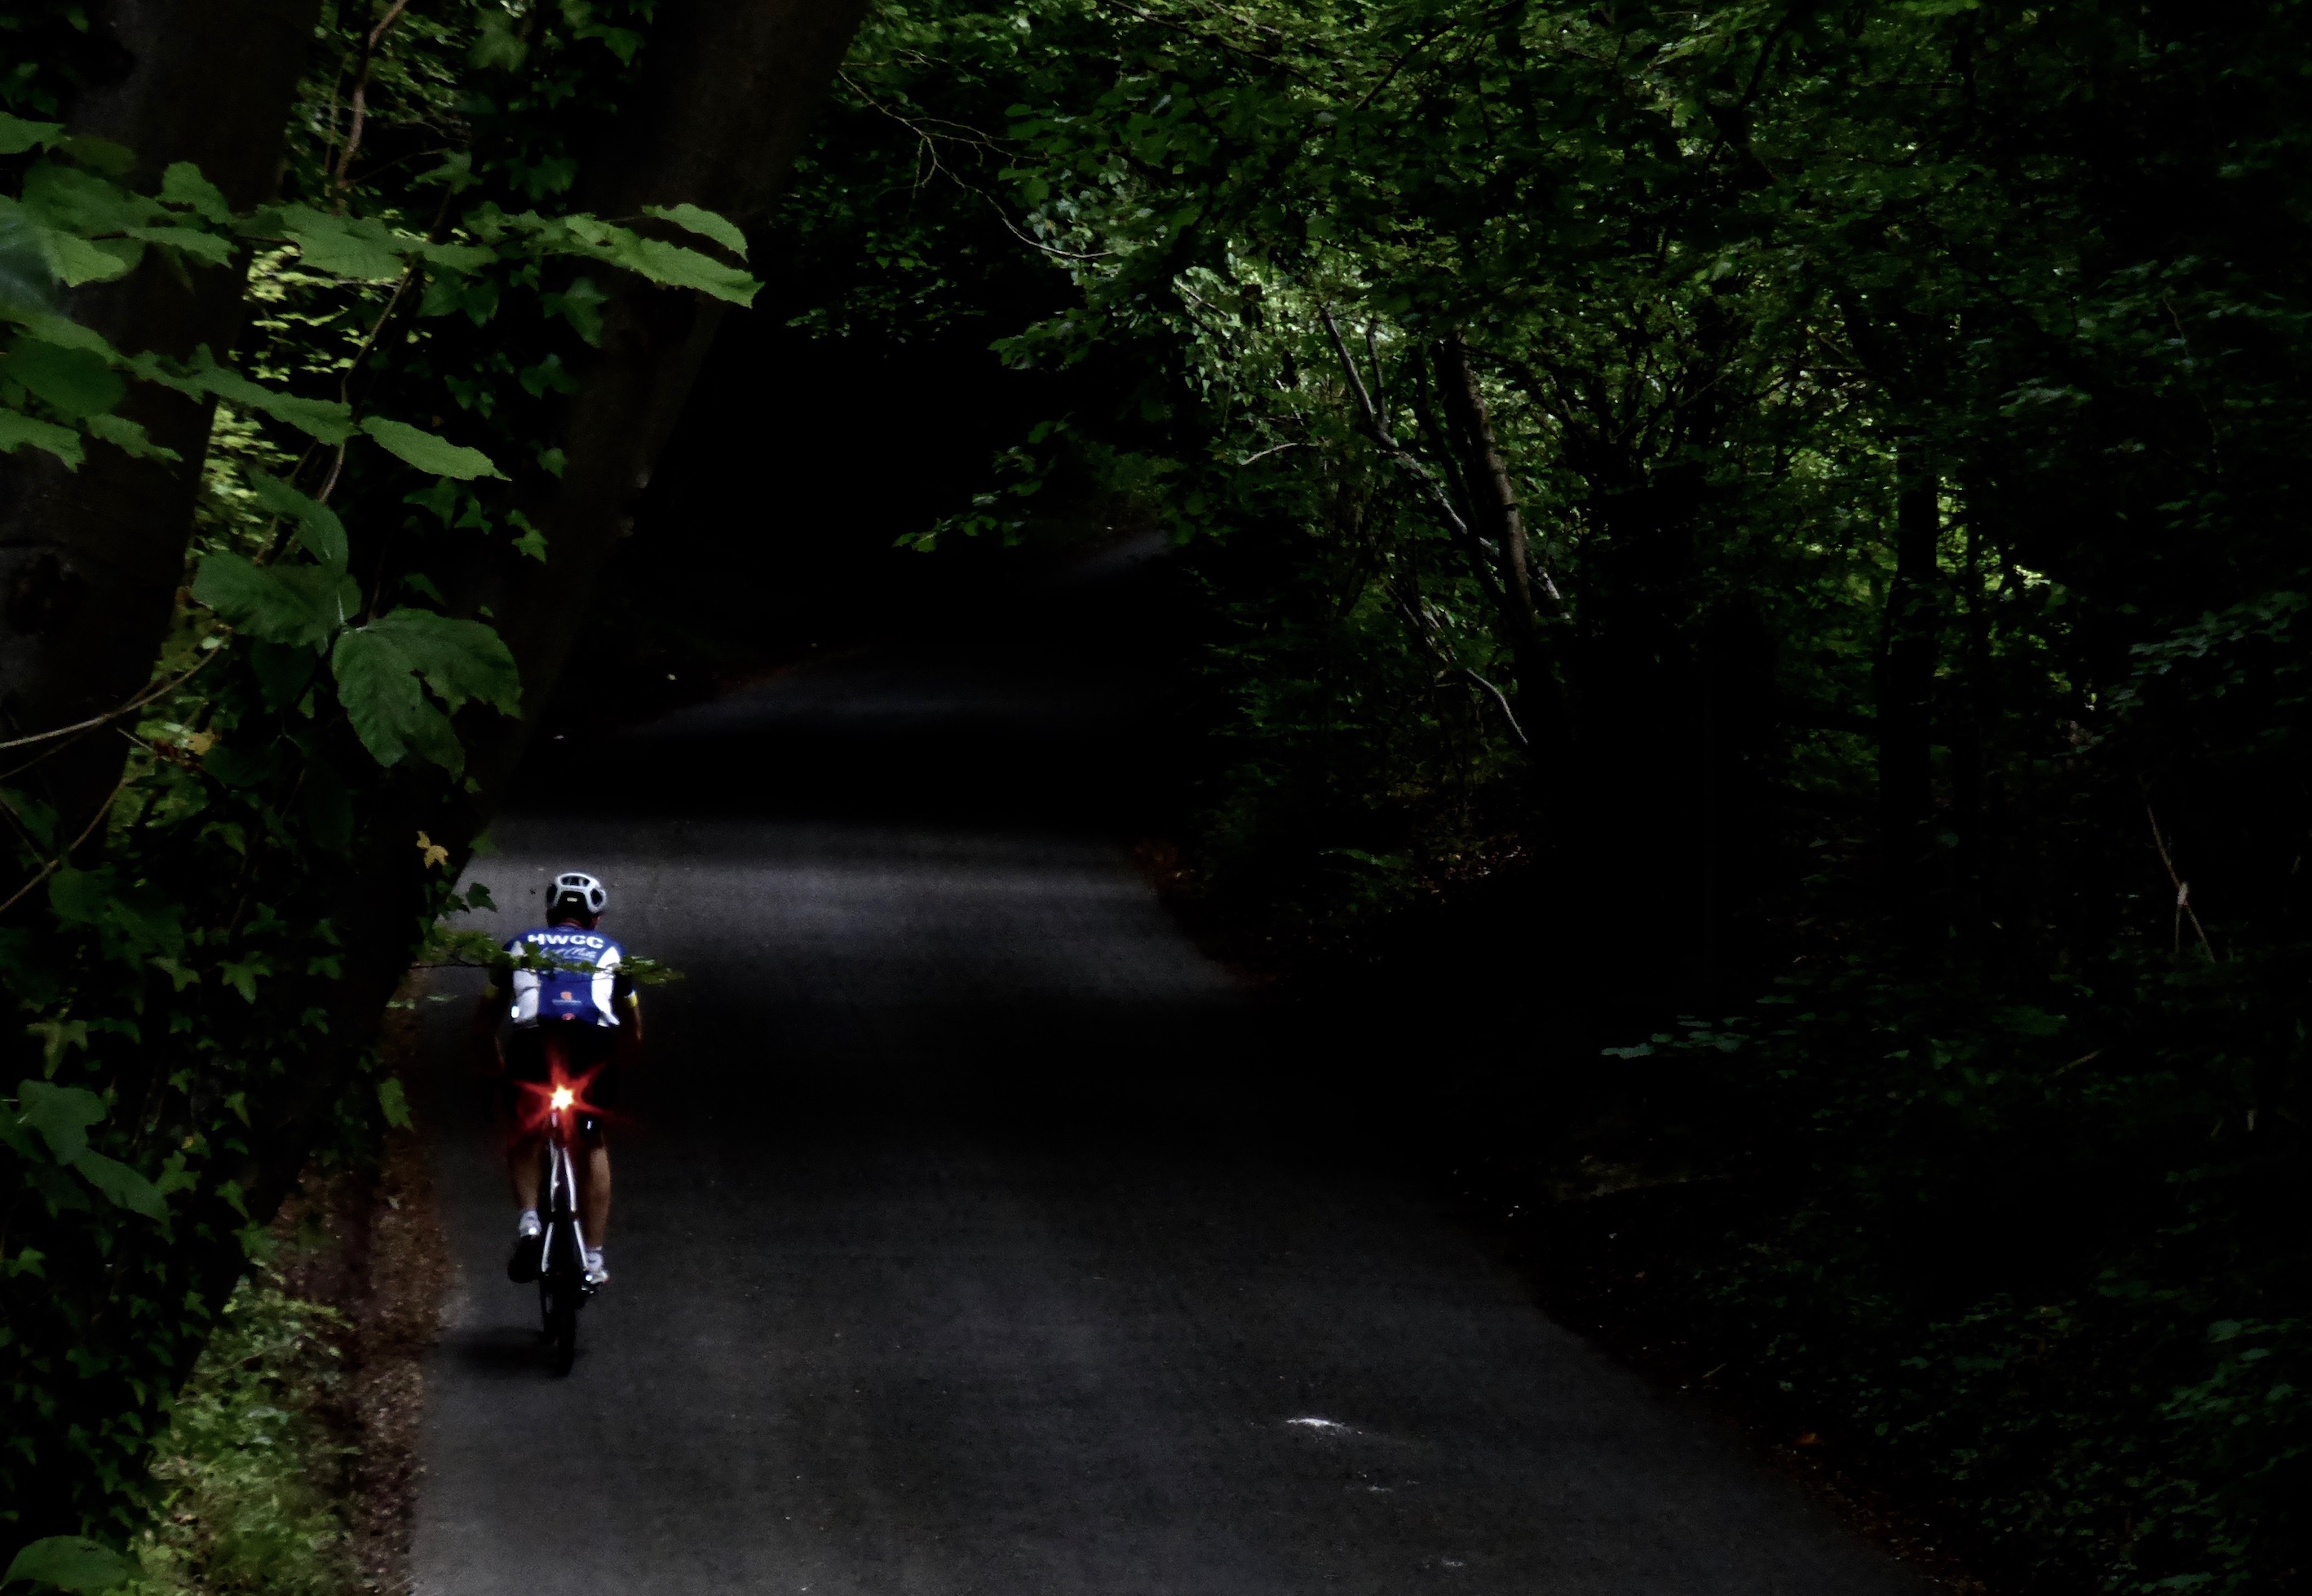 Everesting #2: Whiteleaf  & the High Rouleurs Society